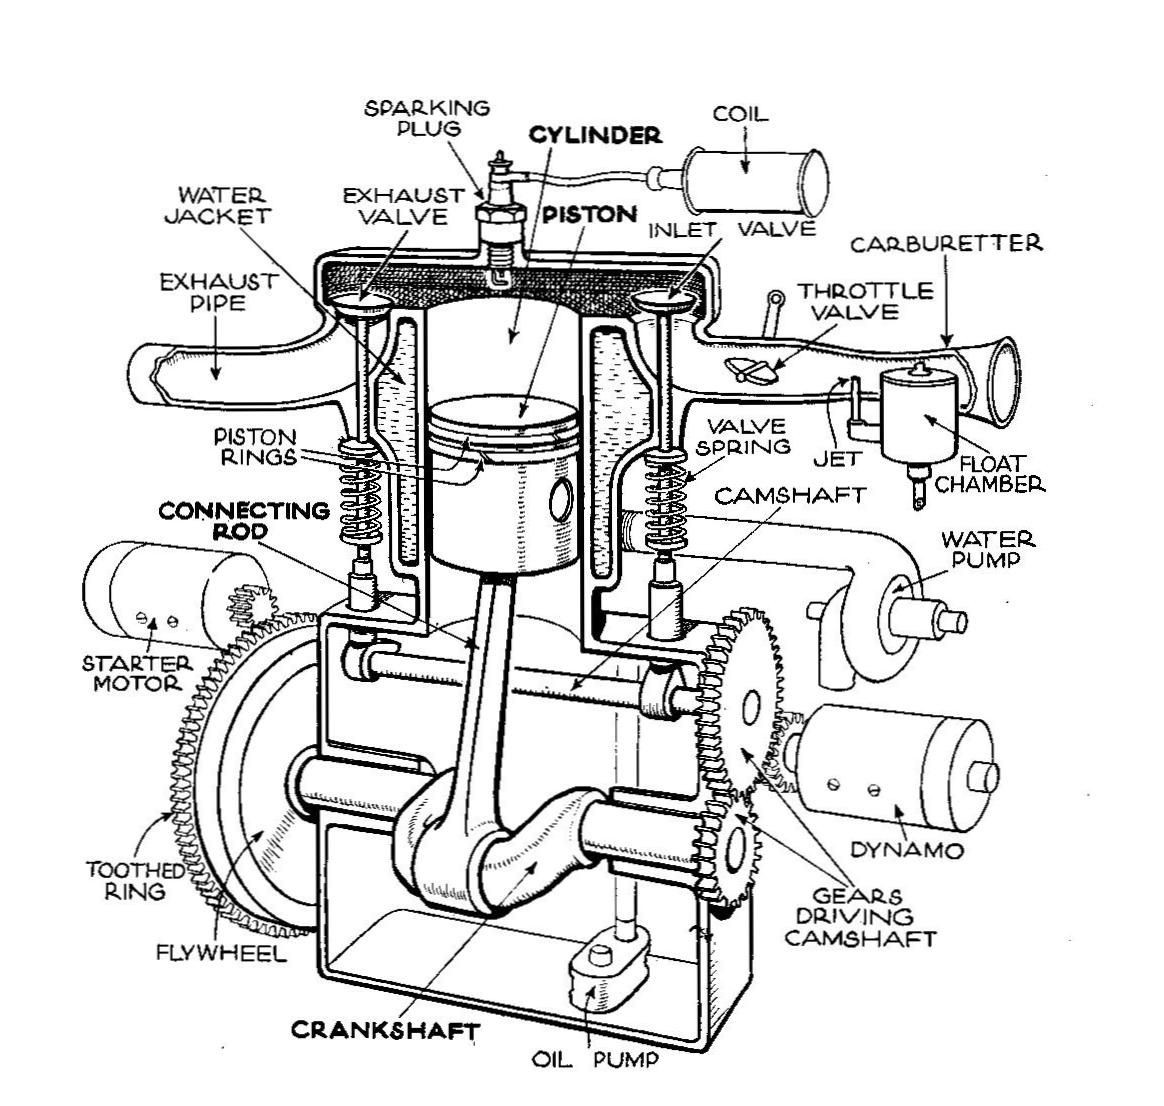 2 stroke engine diagram inspirational